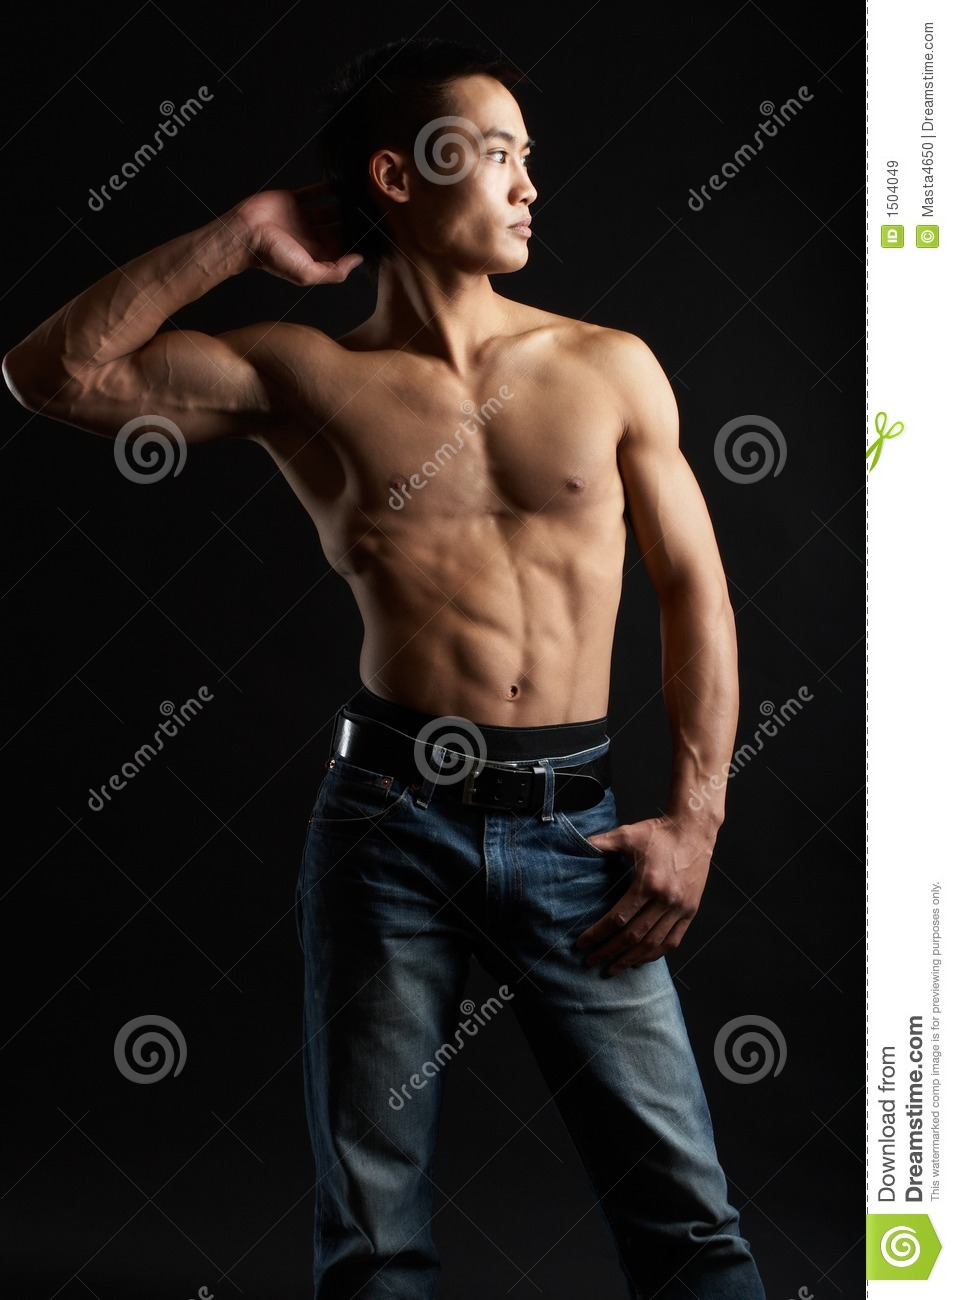 15 Year Boys Bedroom: Tough Asian Guy Stock Image. Image Of Background, Look